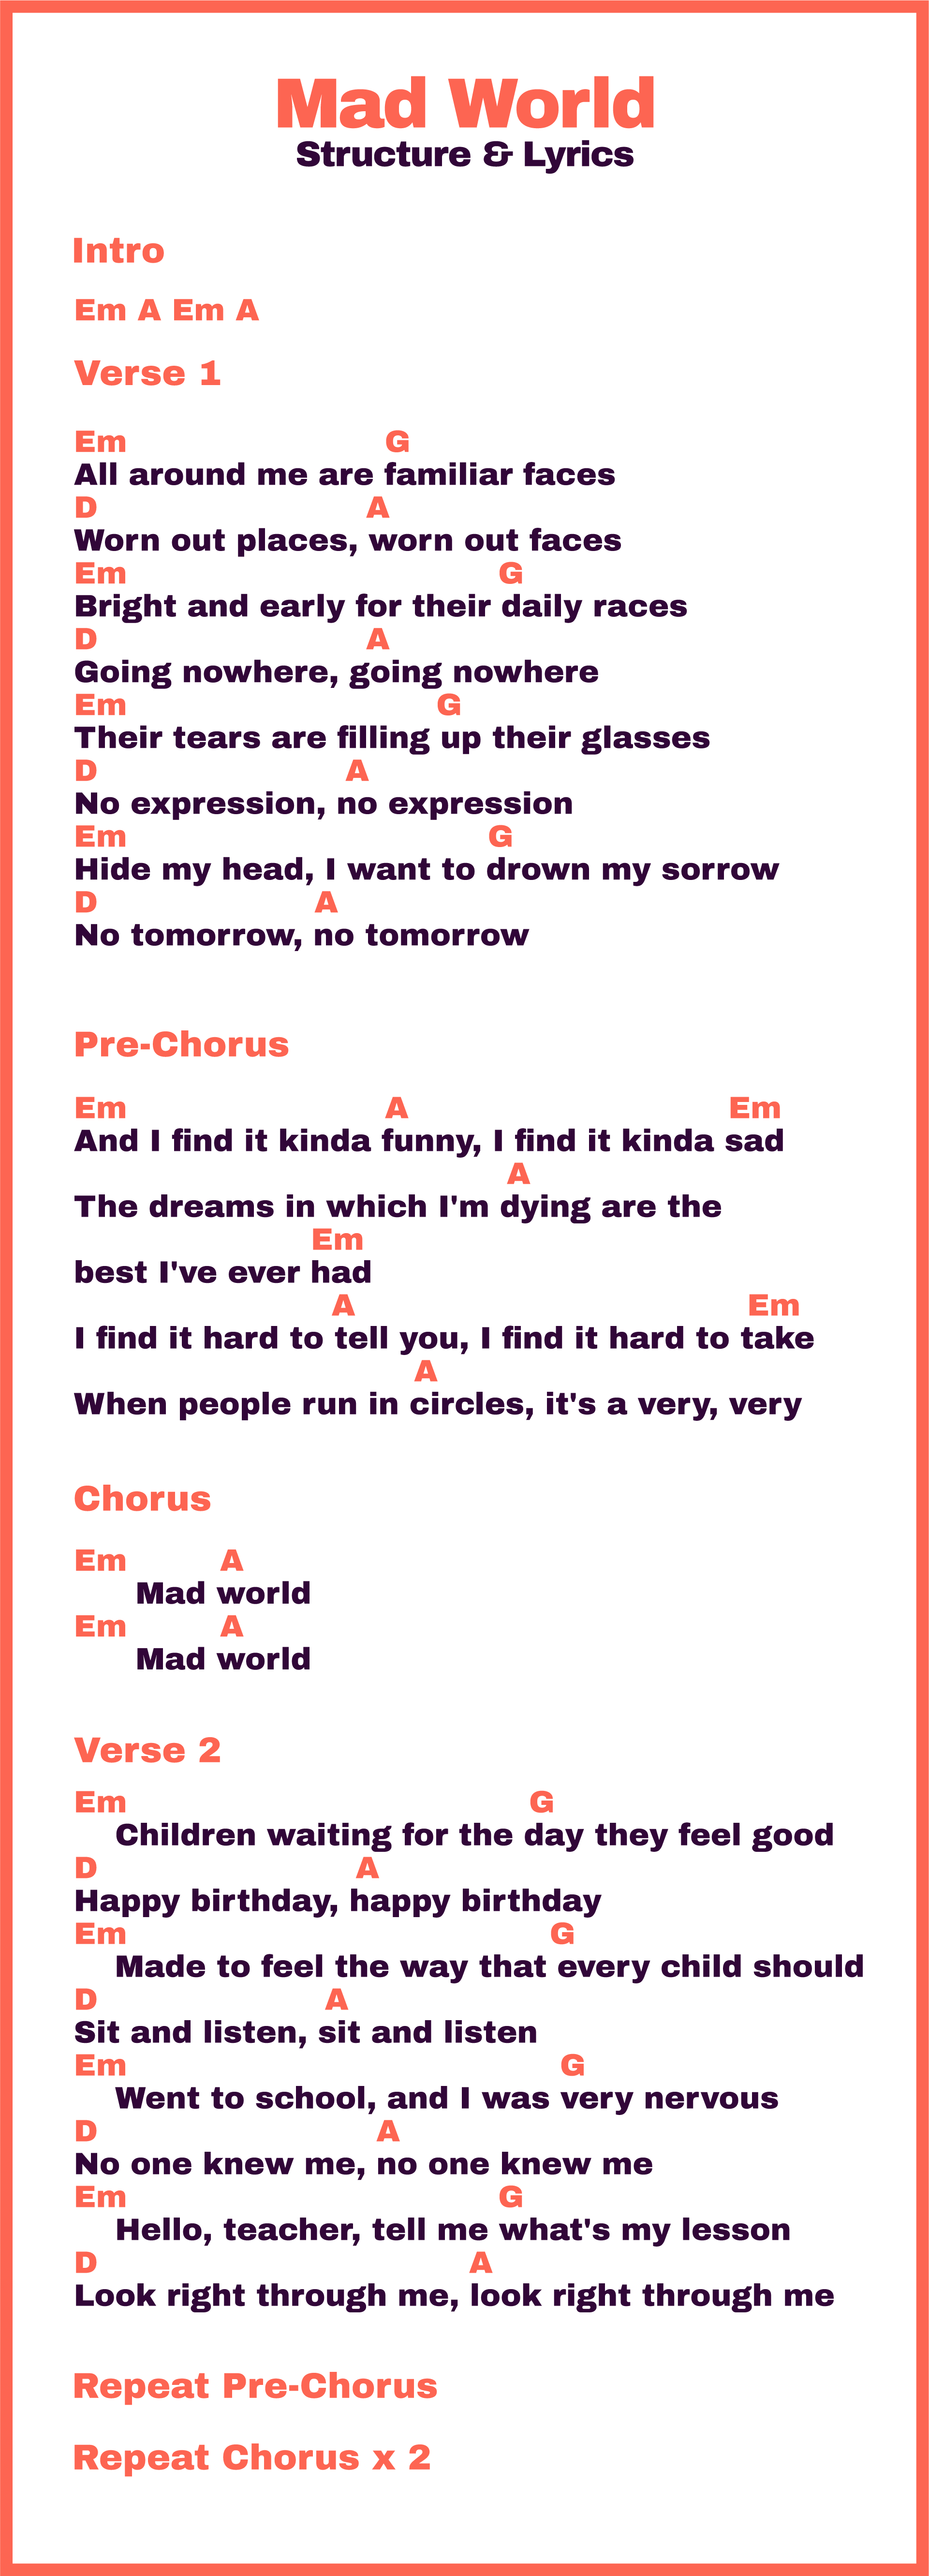 Mad World Song Structure